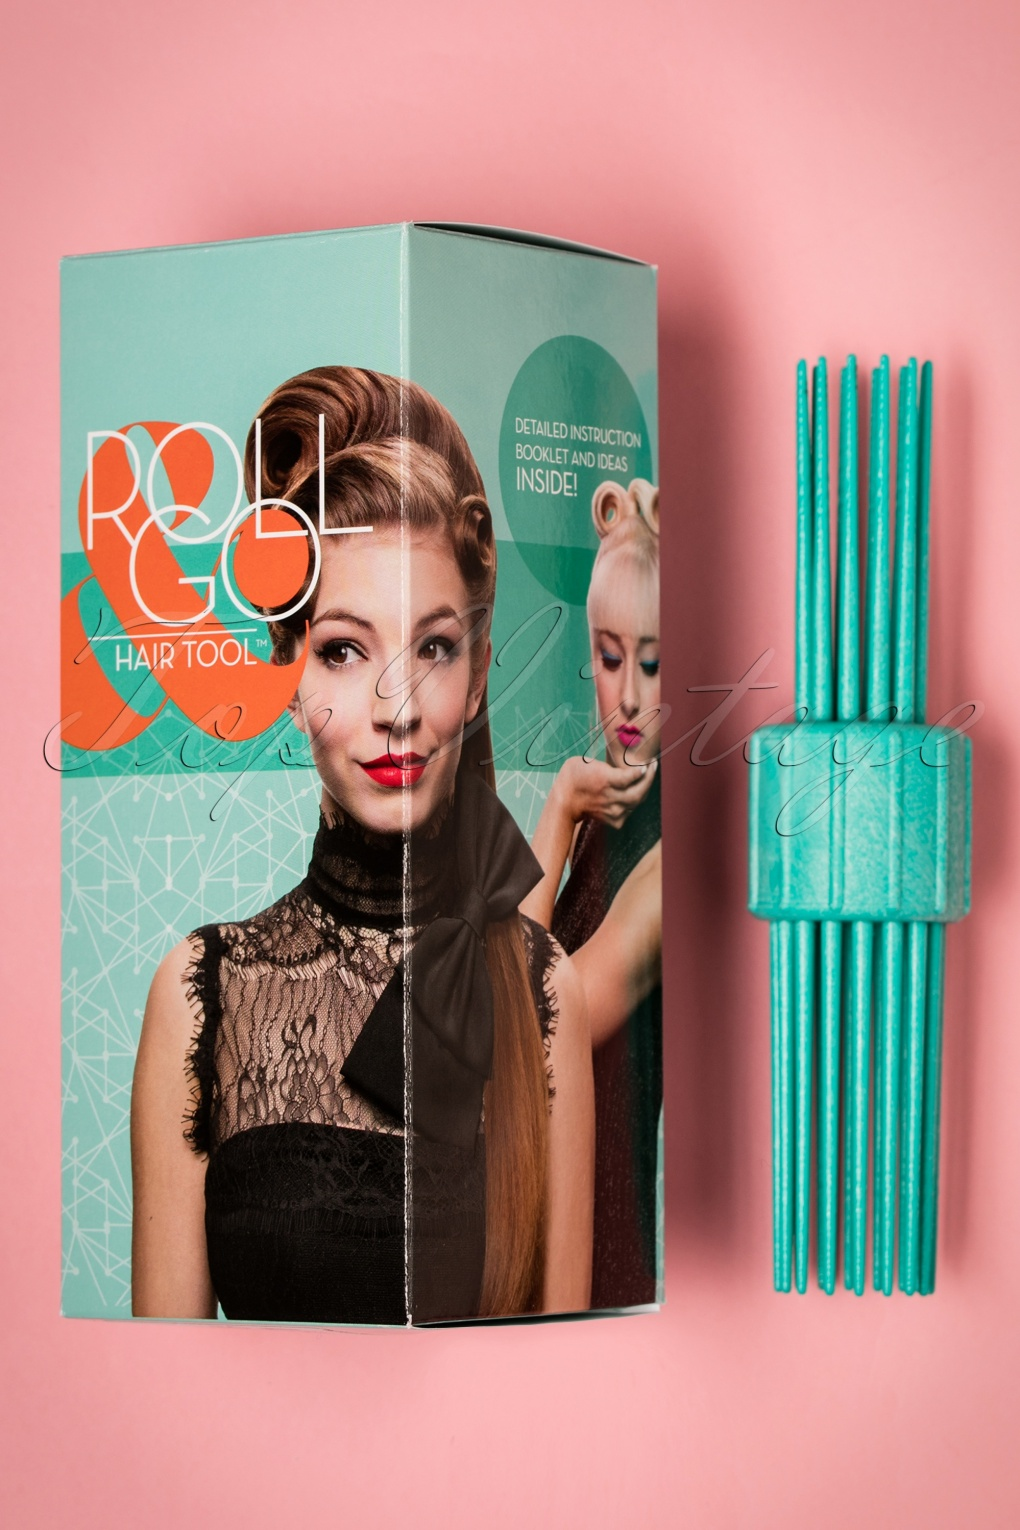 1940s Hairstyles- History of Women's Hairstyles Vintage Hairstyling RollGo Pin Curl Hair Tool Set £26.89 AT vintagedancer.com